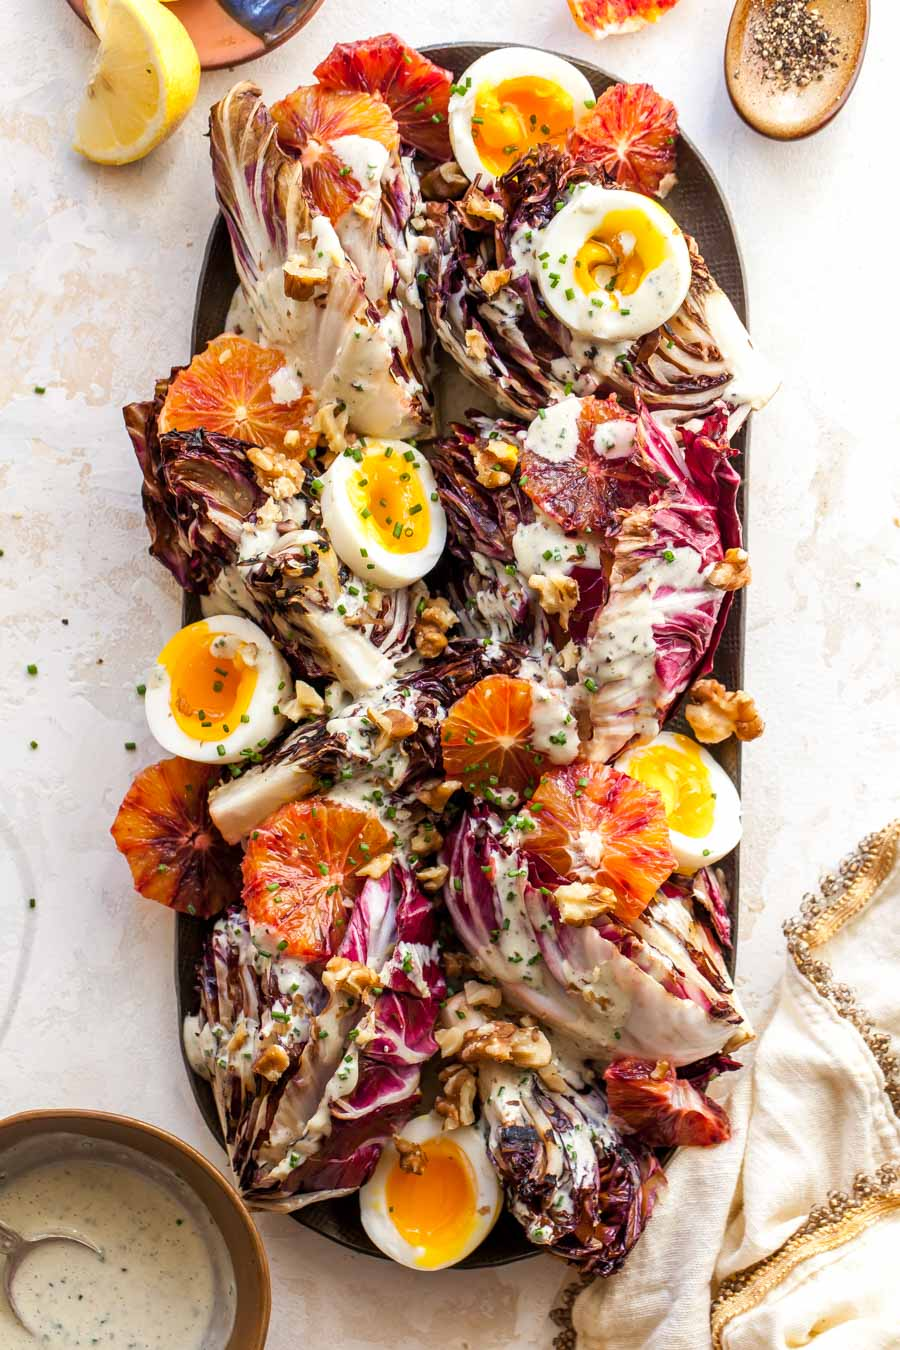 Radicchio Salad with Miso Dressing, soft boiled eggs, citrus, and walnuts.